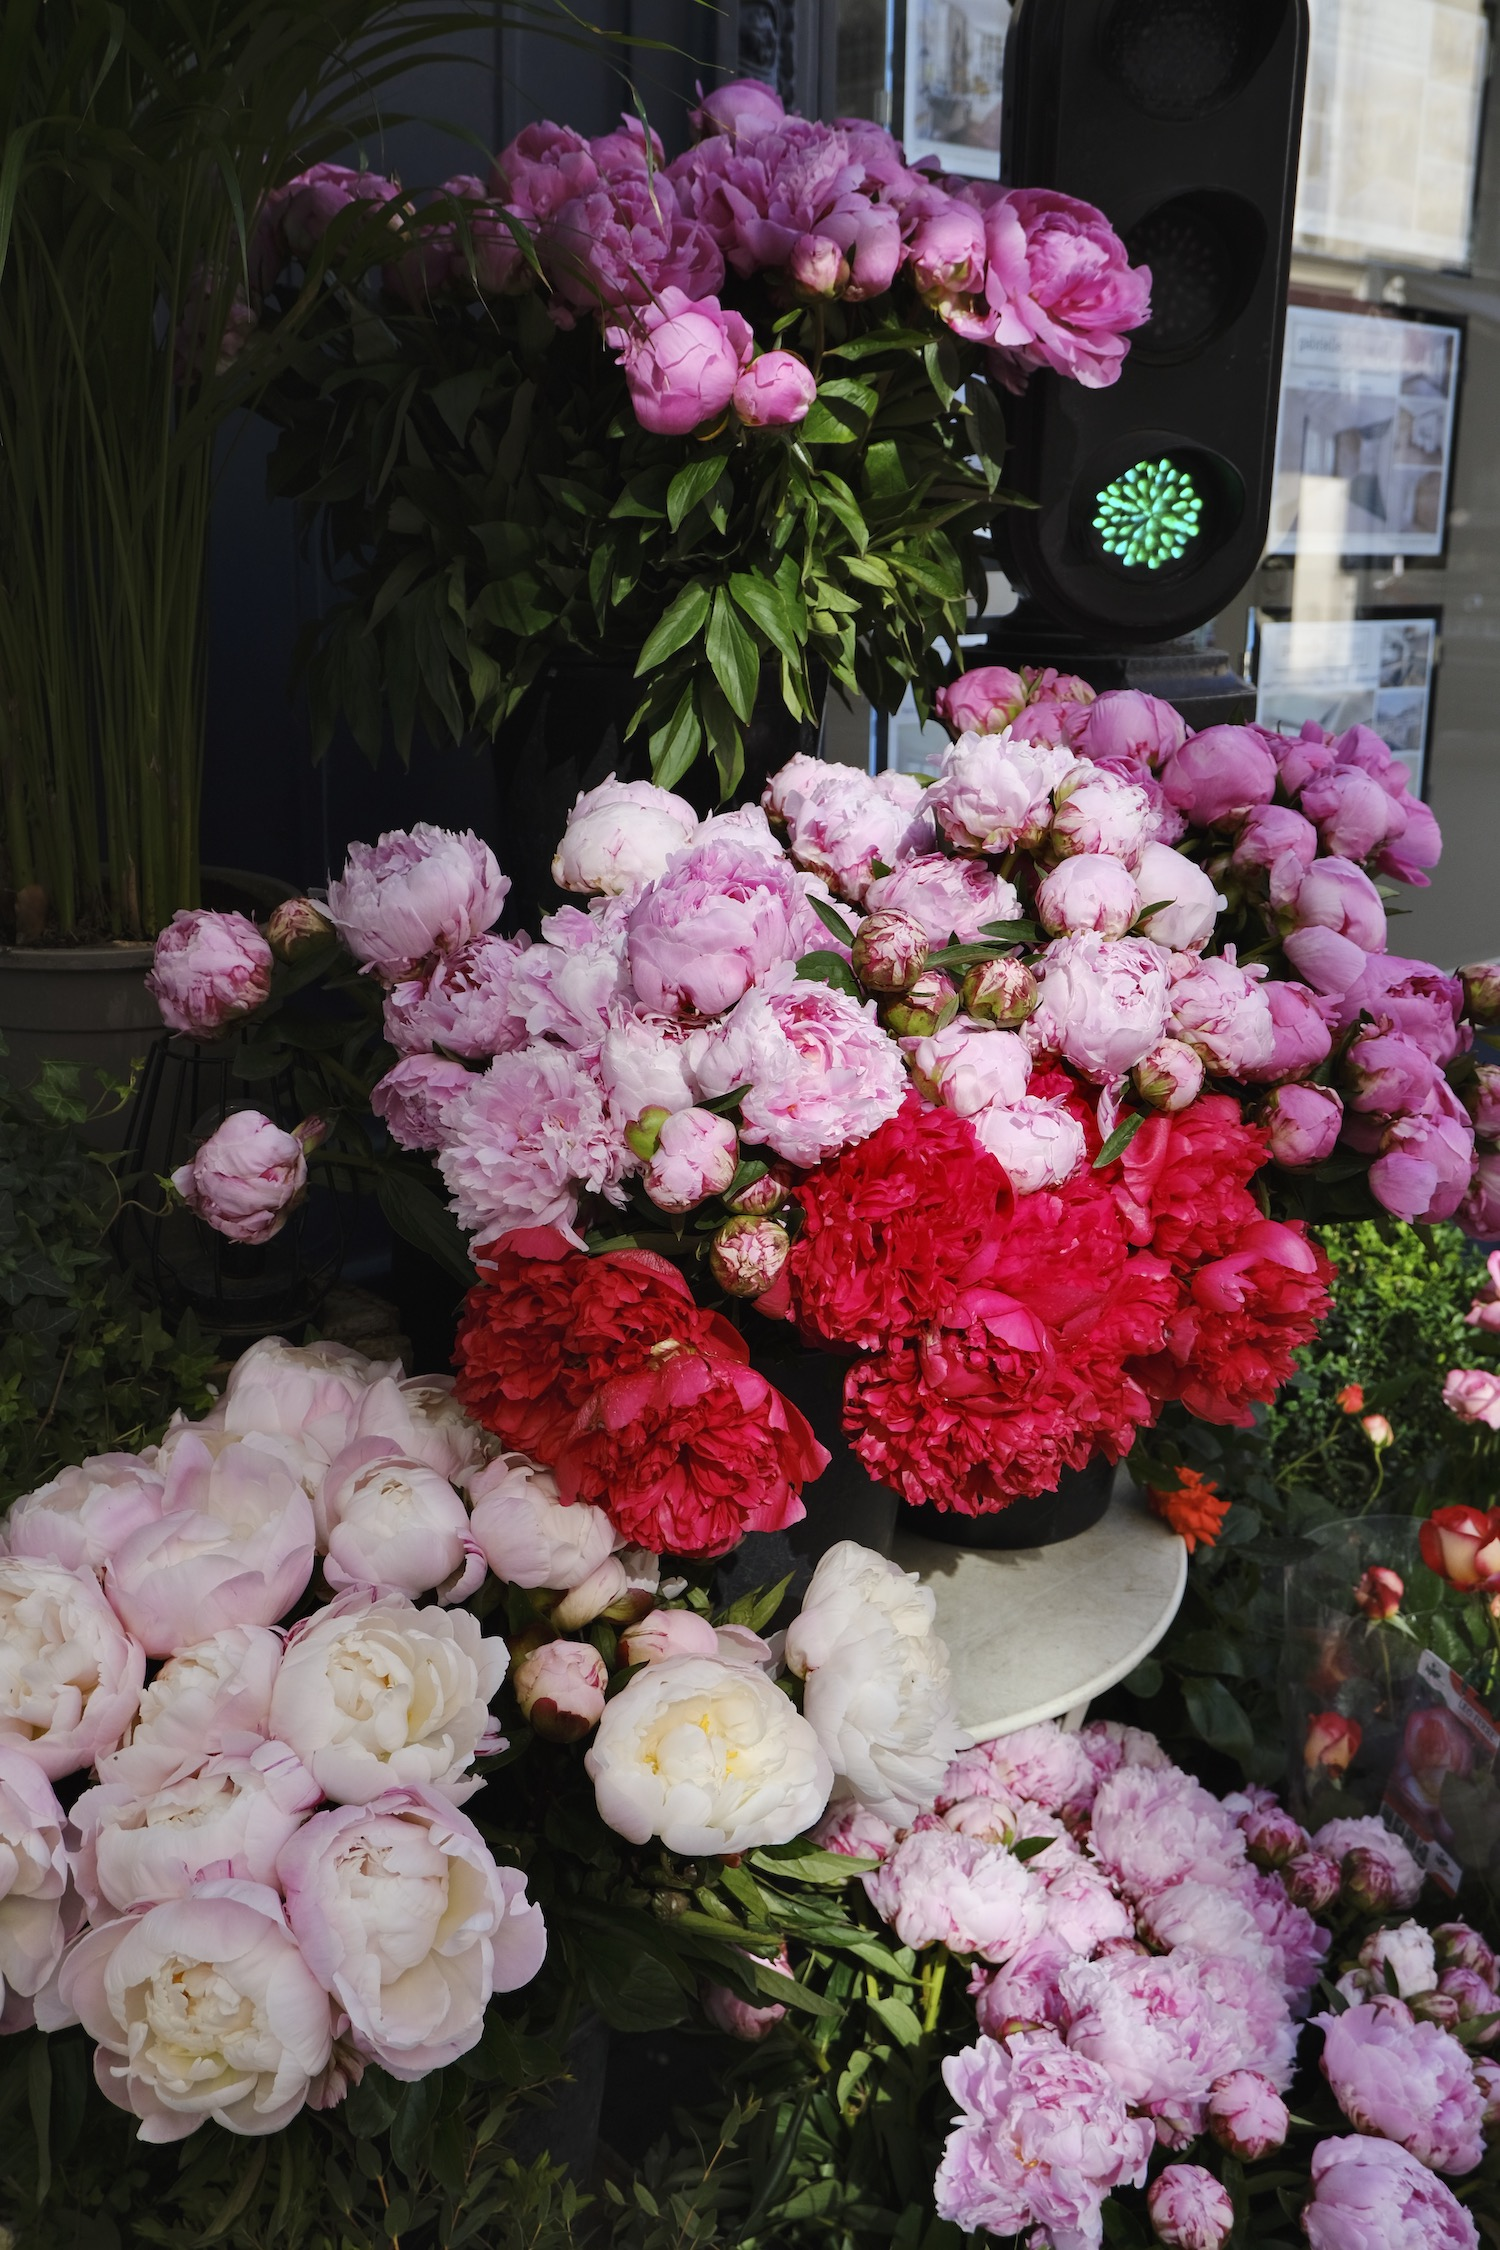 June Five Friday Finds from France Peonies in Paris. This week includes Ruinart's new eco-packaging